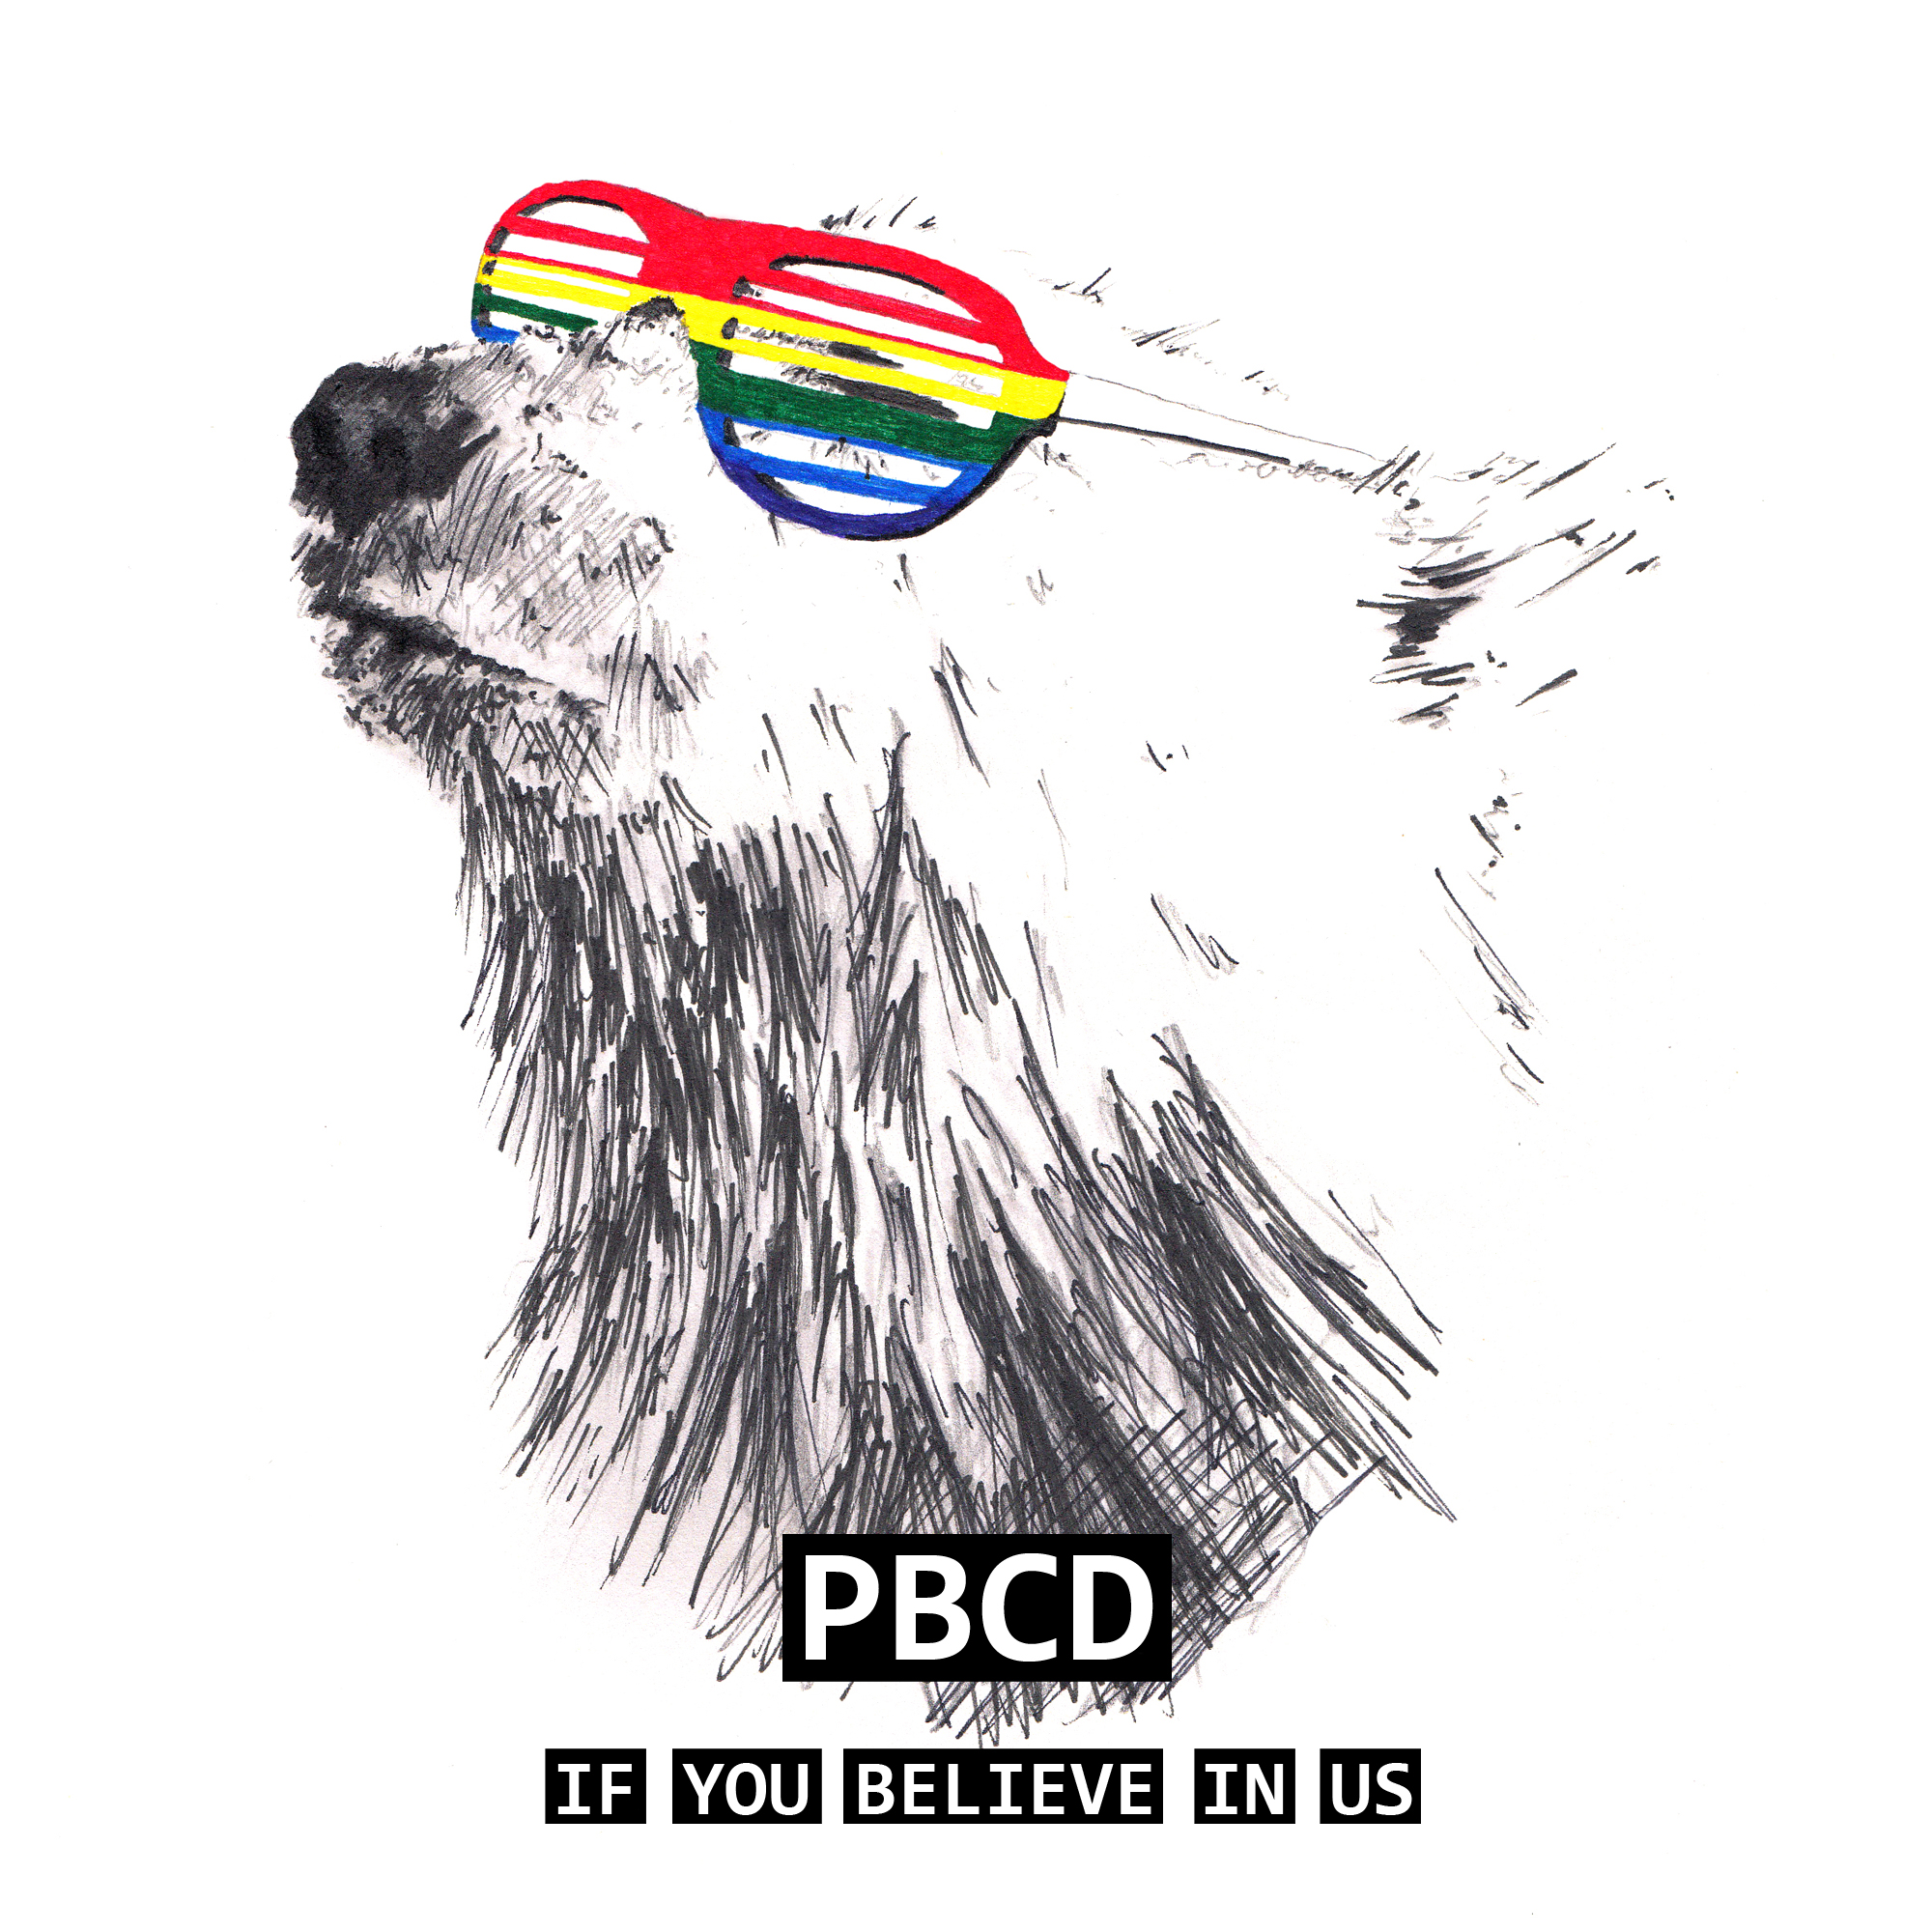 If You Believe In Us - PBCD